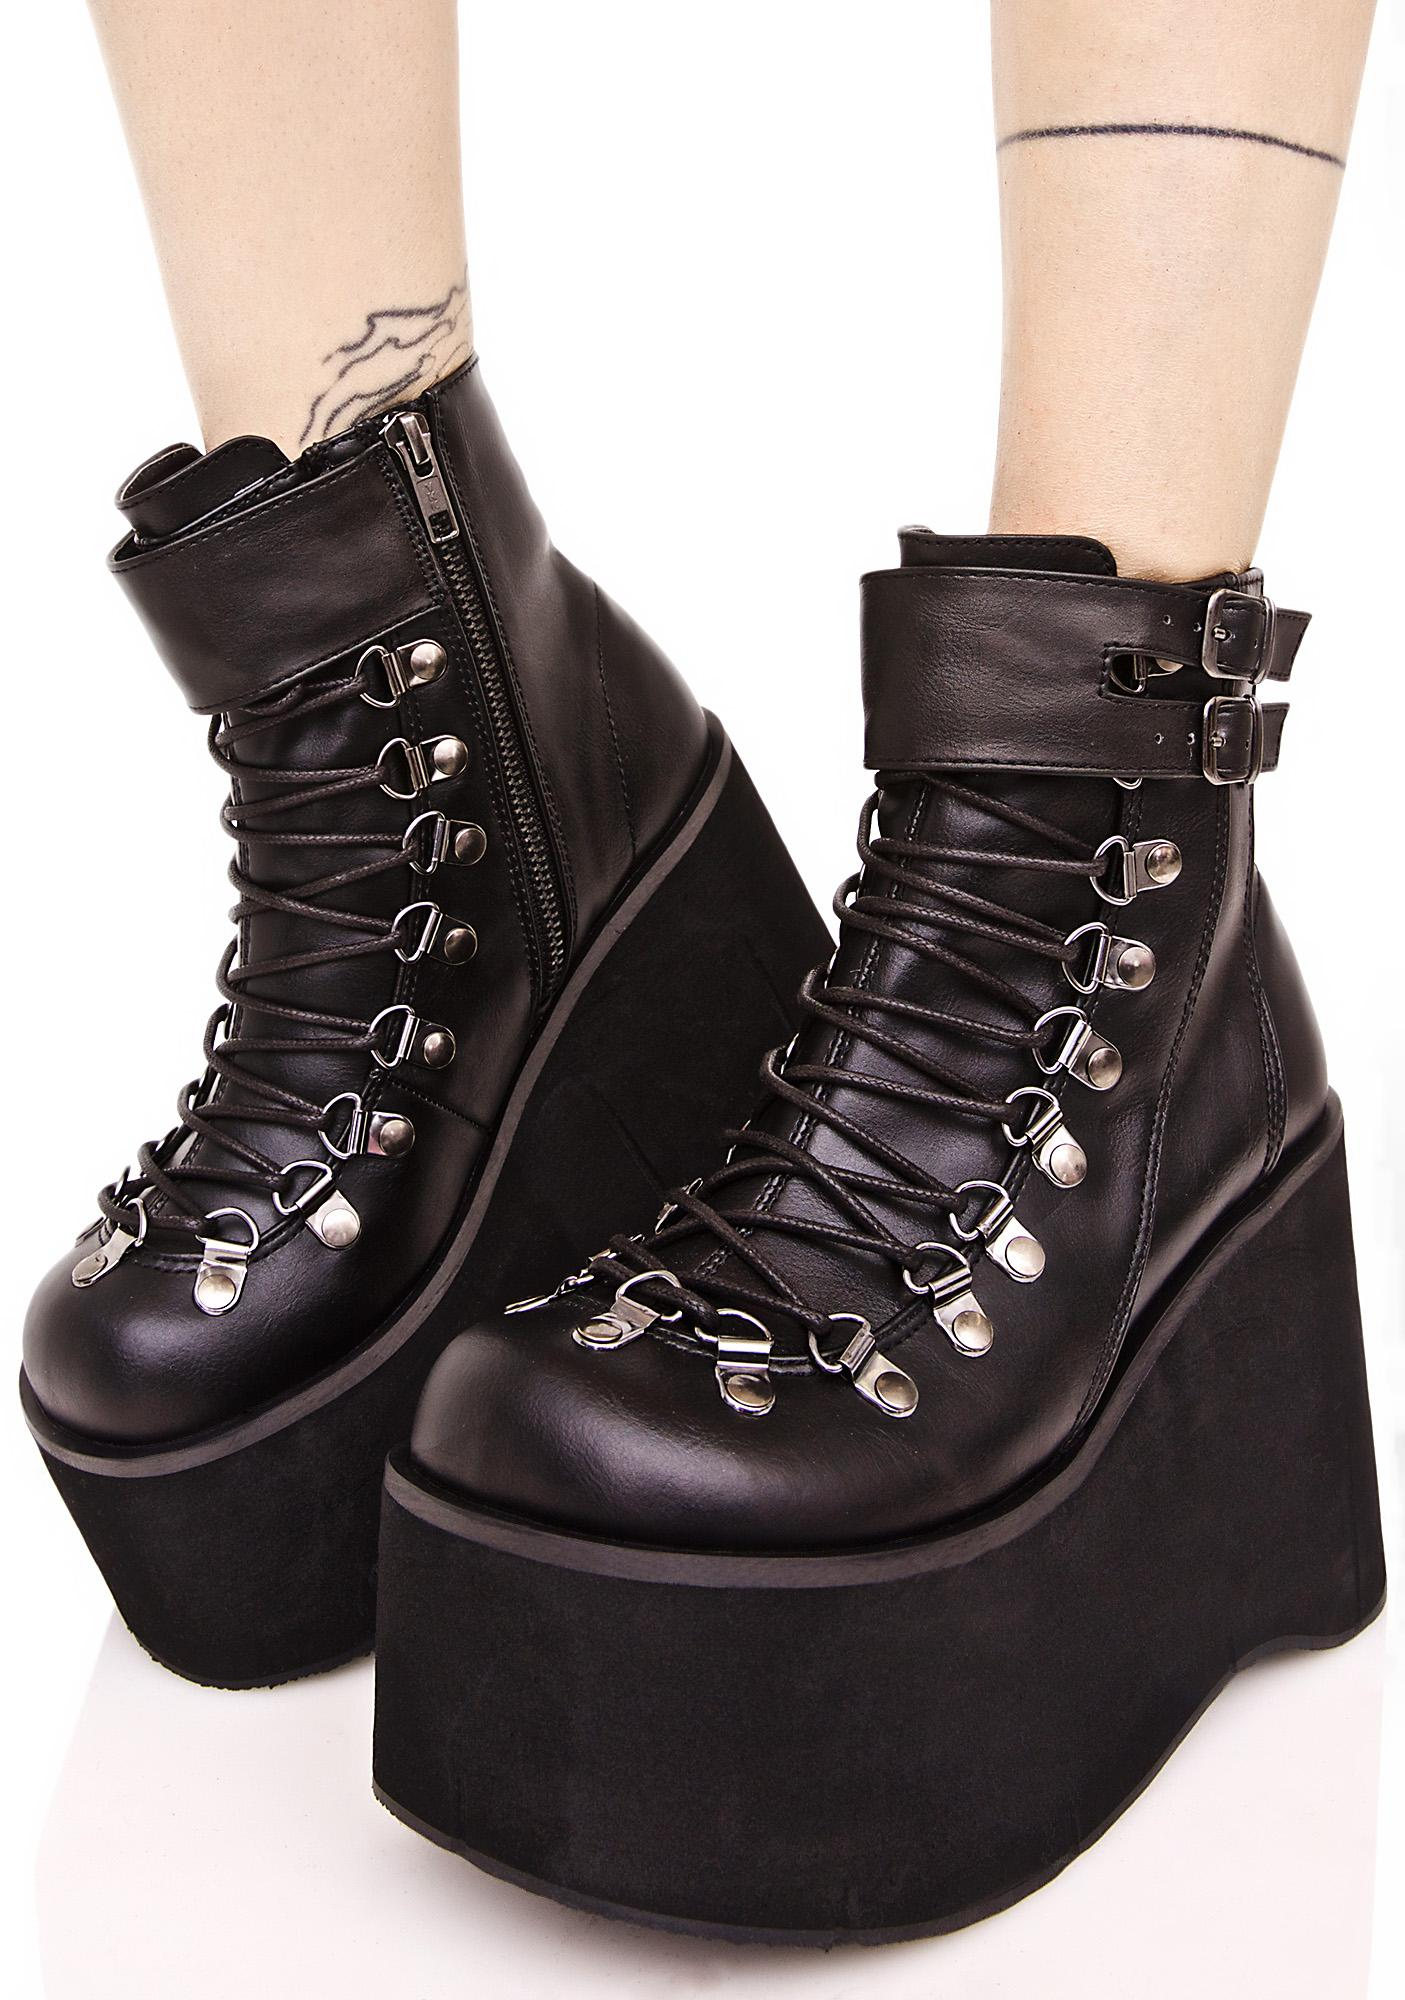 Competitive Army Green EU 39 Boots online, Gamiss offers you Lace Up Platform Suede Ankle Boots at $, we also offer Wholesale service. Cheap Fashion online retailer providing customers trendy and stylish clothing including different categories such as dresses, tops, swimwear.